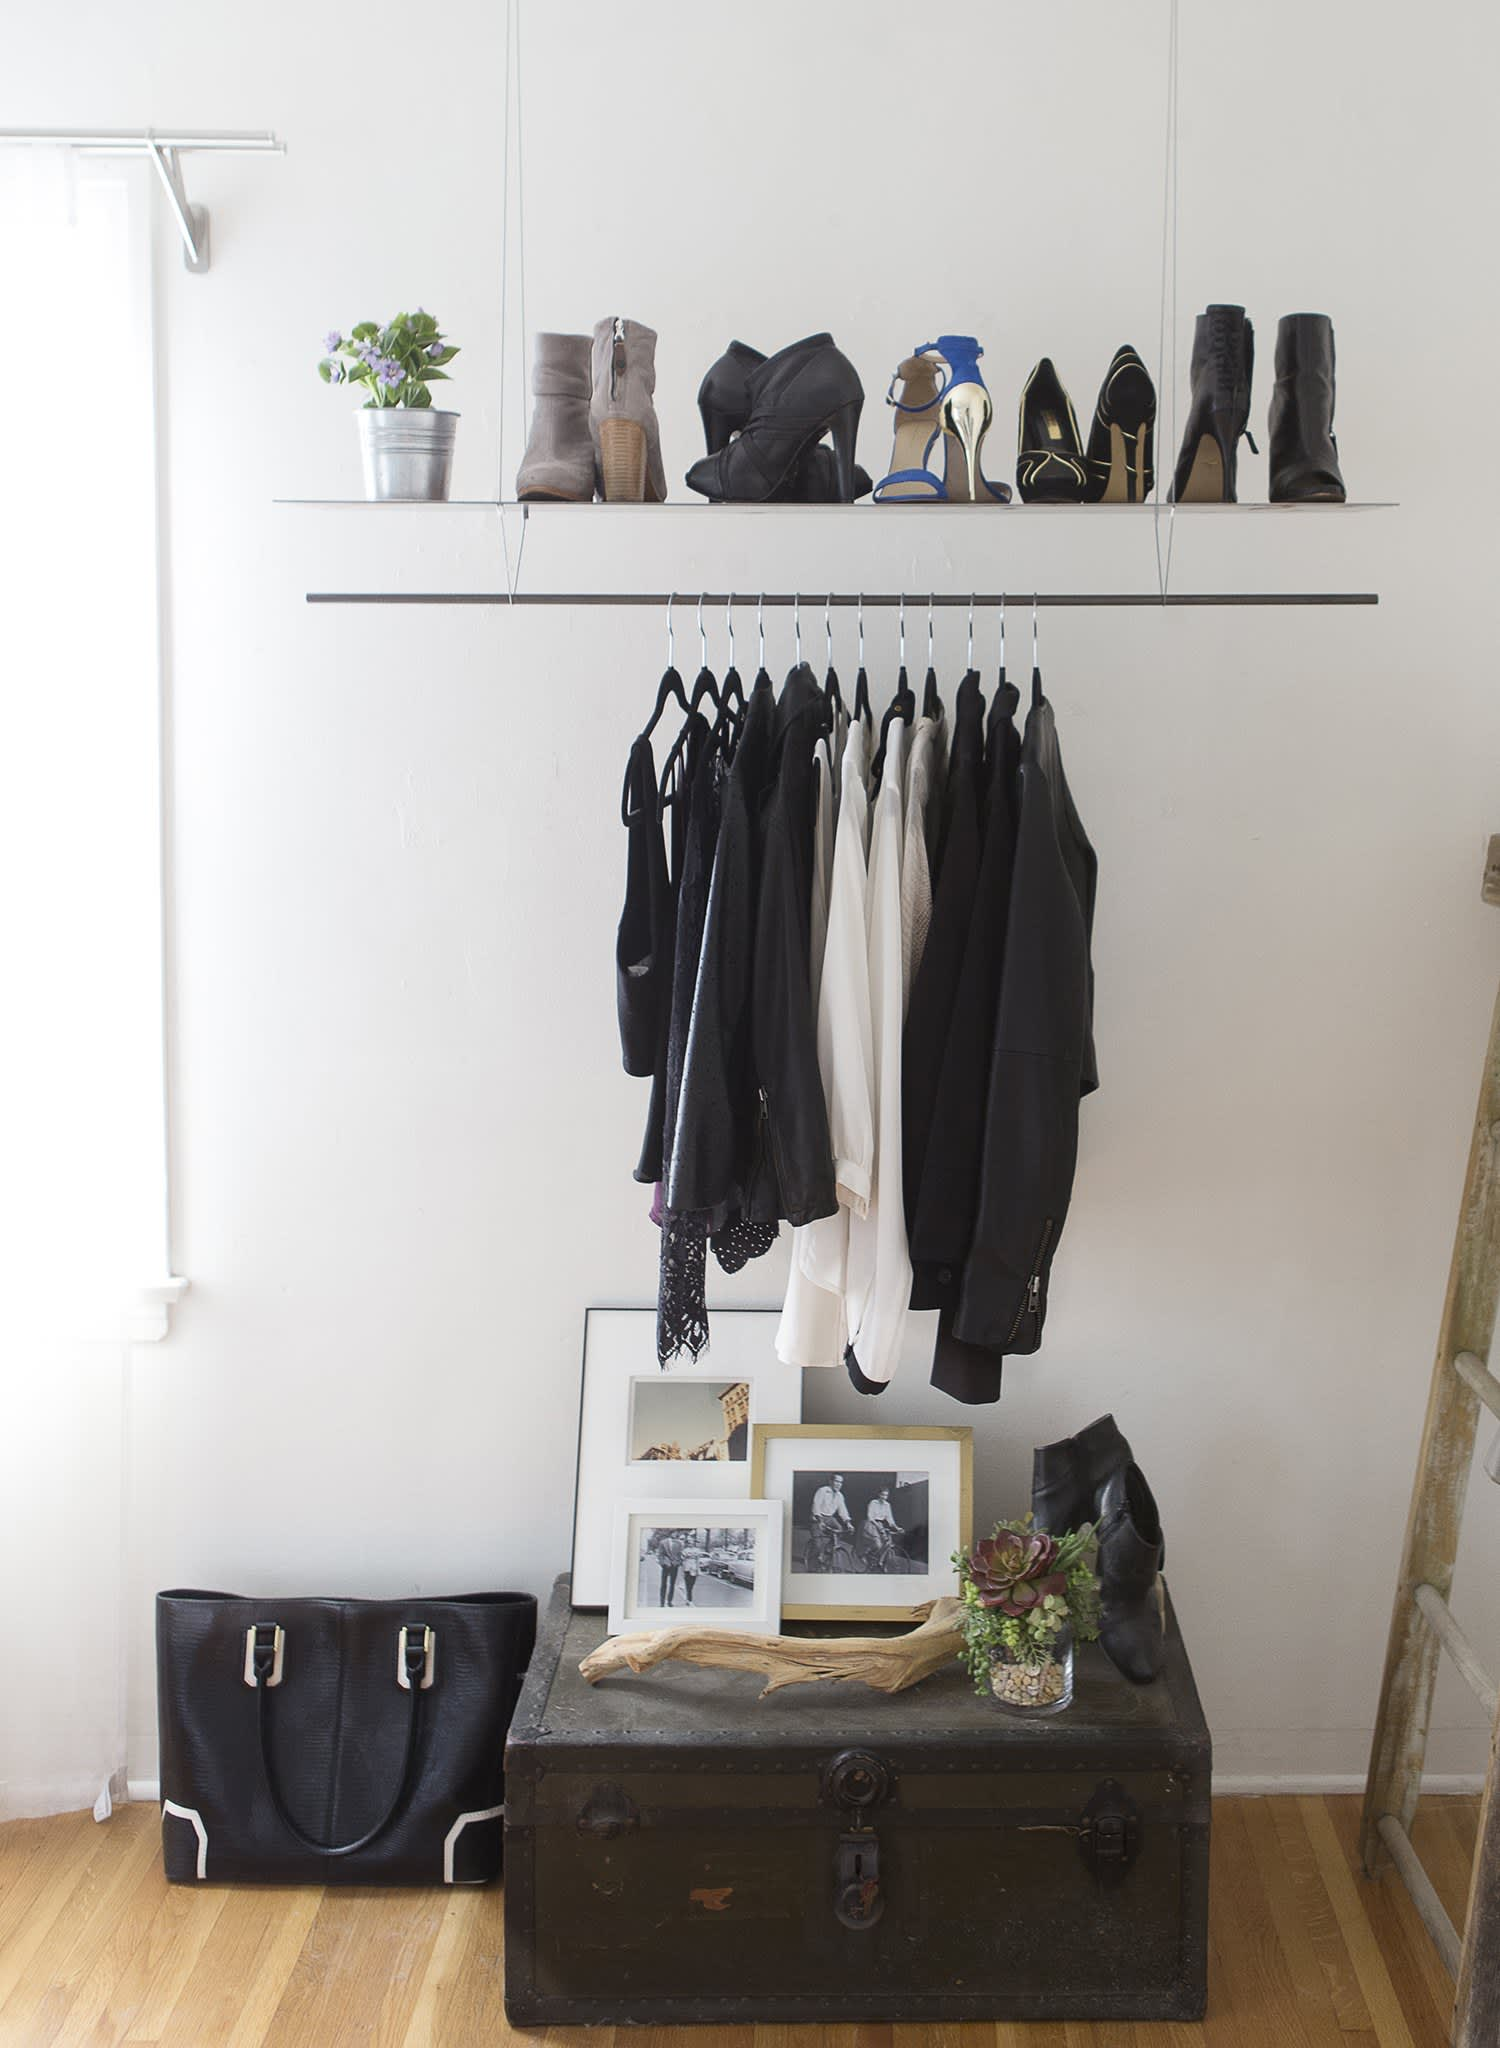 My Capsule Wardrobe Experiment: Part Two – How I Created My Capsule